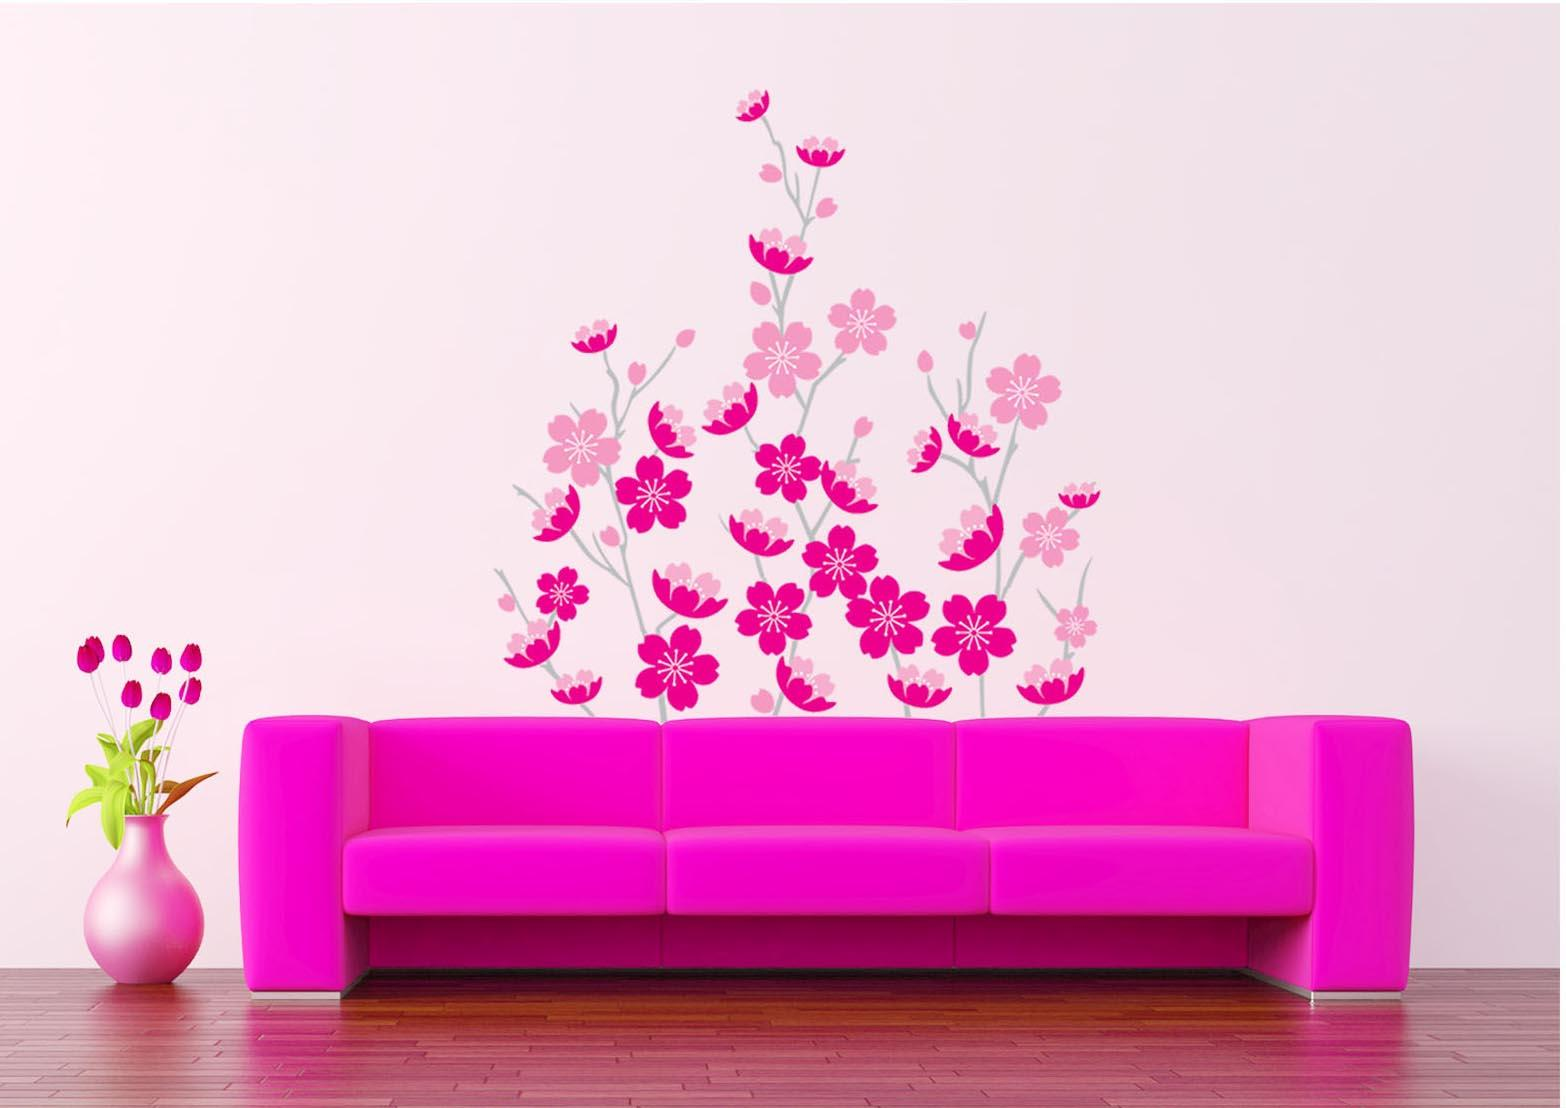 Wall decoration stickers for bedroom - Pink Sakura Wall Art Decor Sticker Romantic Flowers Wallpaper Mural Poster Bedroom Living Room Decoration Diy Art Home Decal